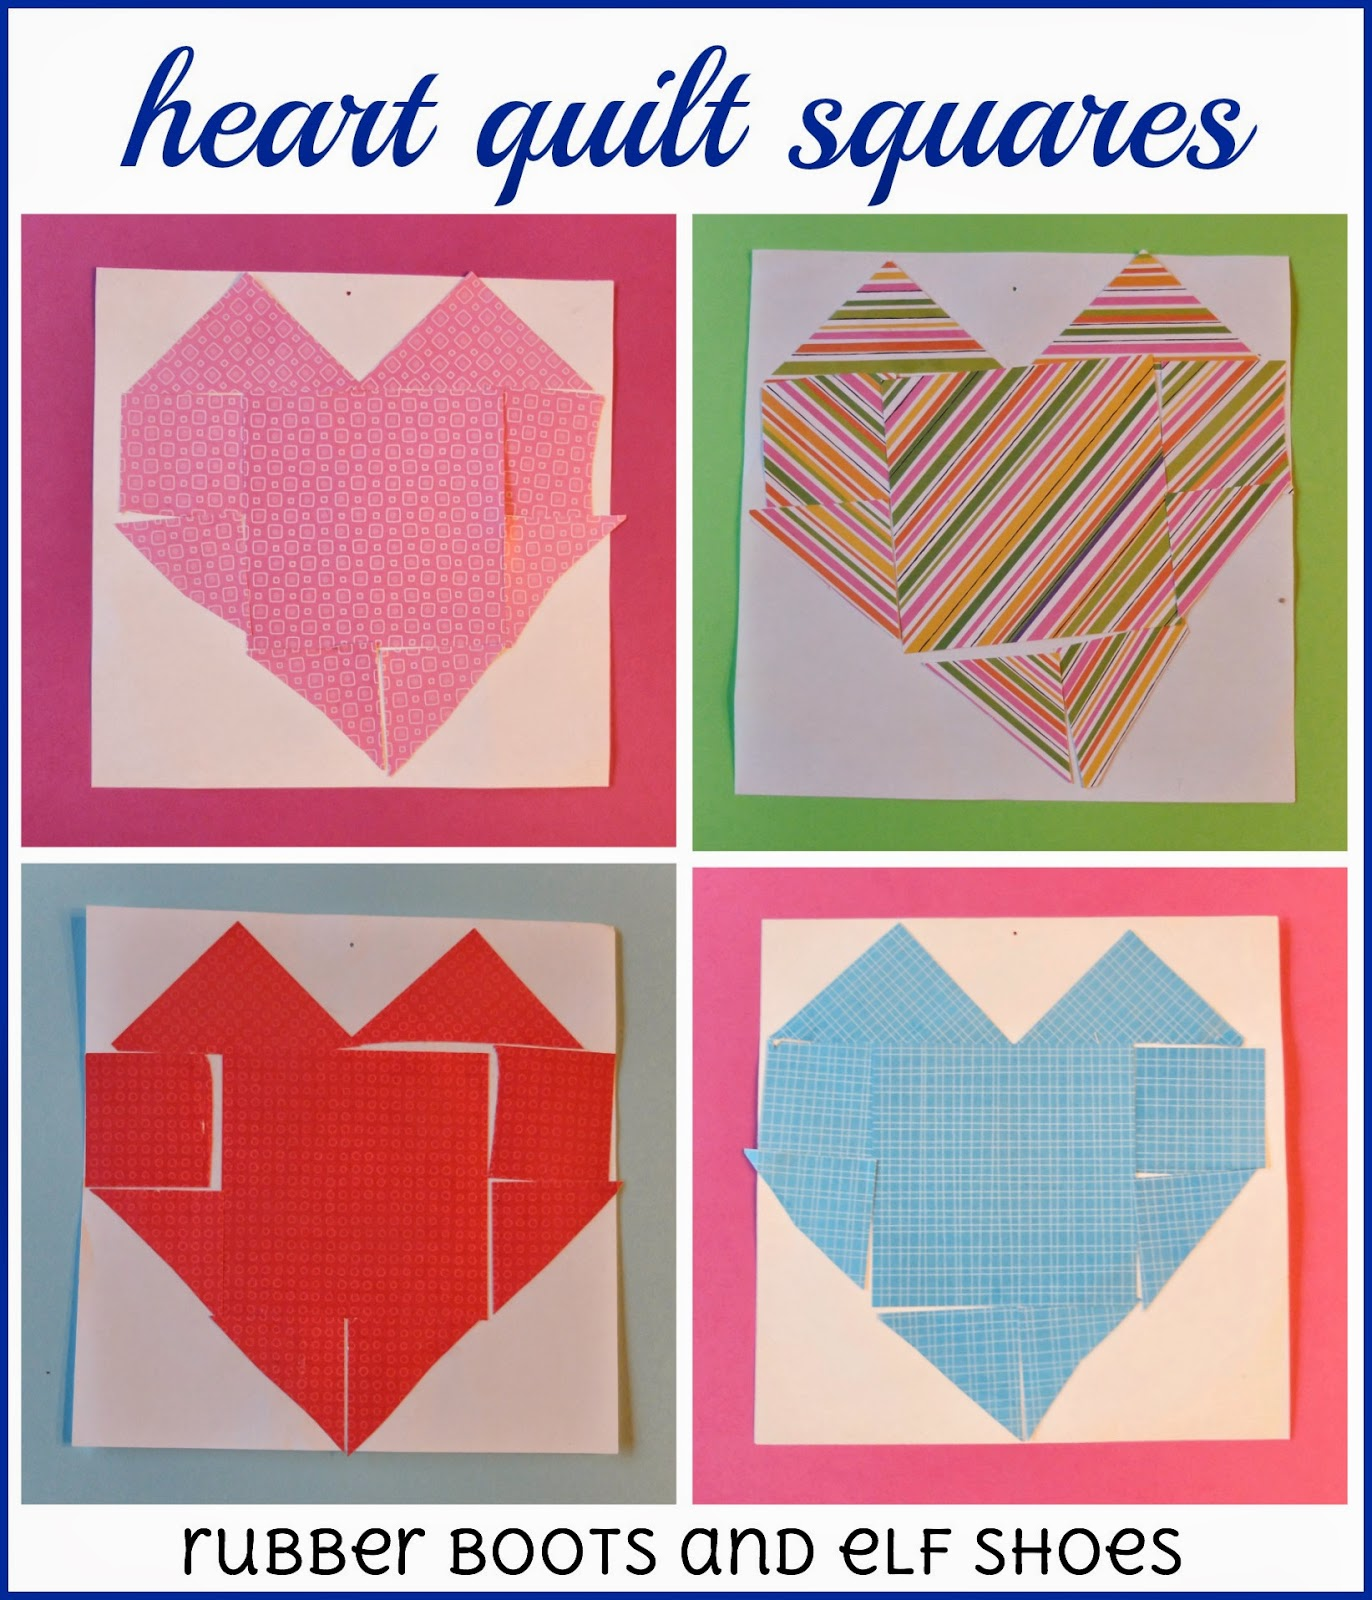 The Quiltmakers craft